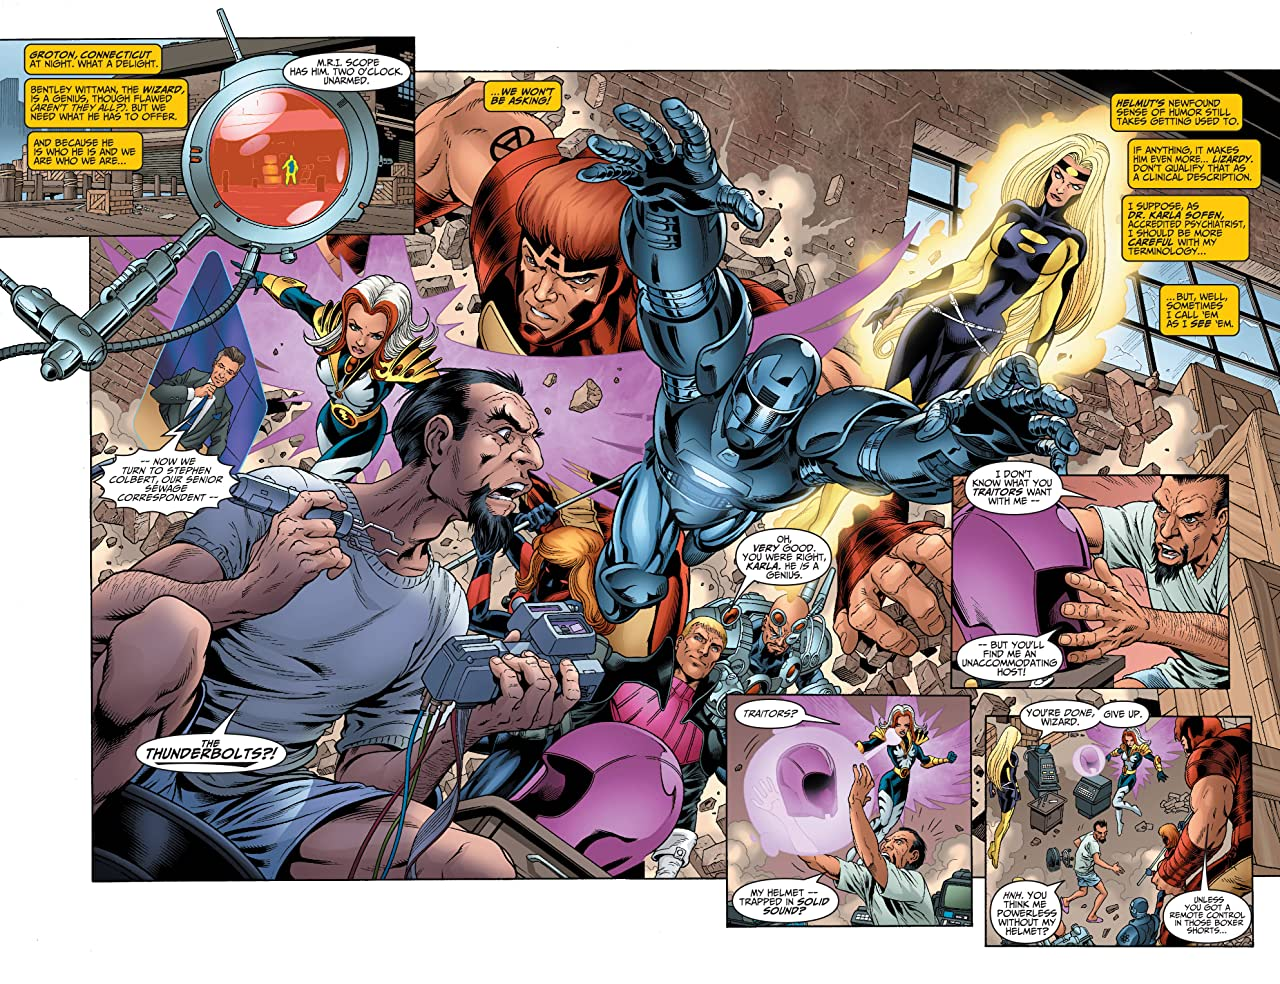 Avengers/Thunderbolts (2004) #3 (of 6)